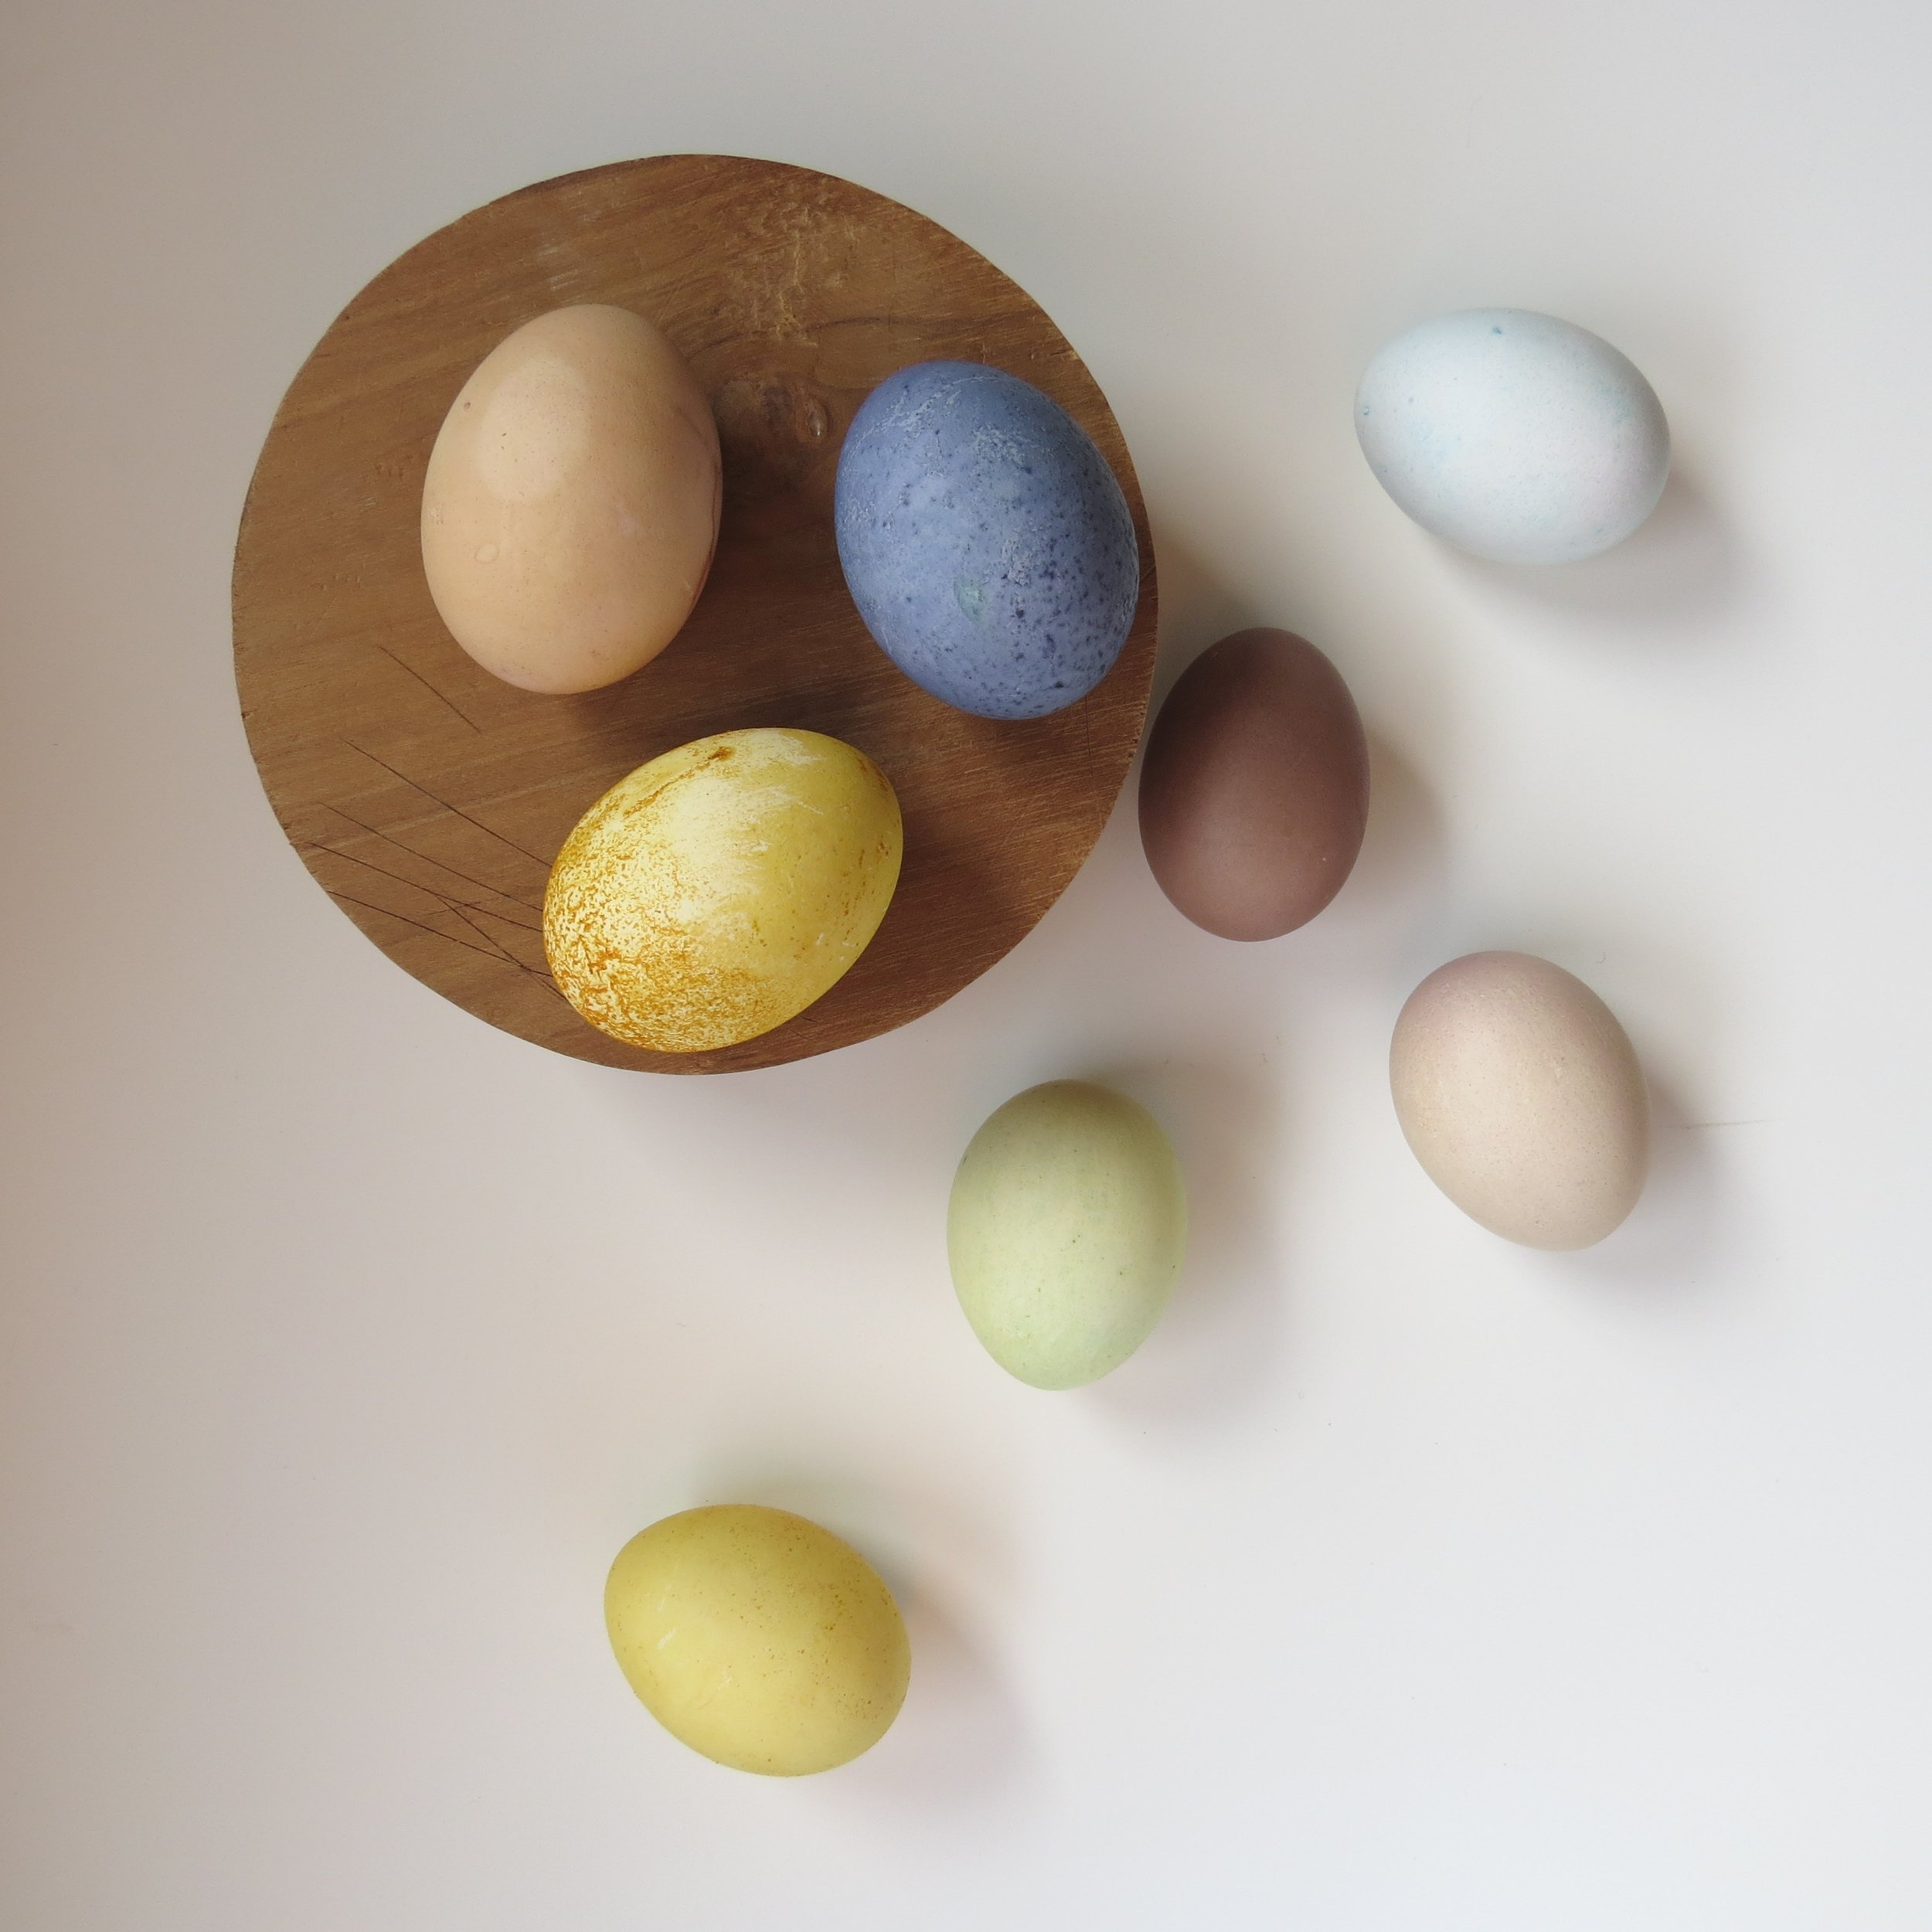 pastel easter eggs dyed from fruits and veggies